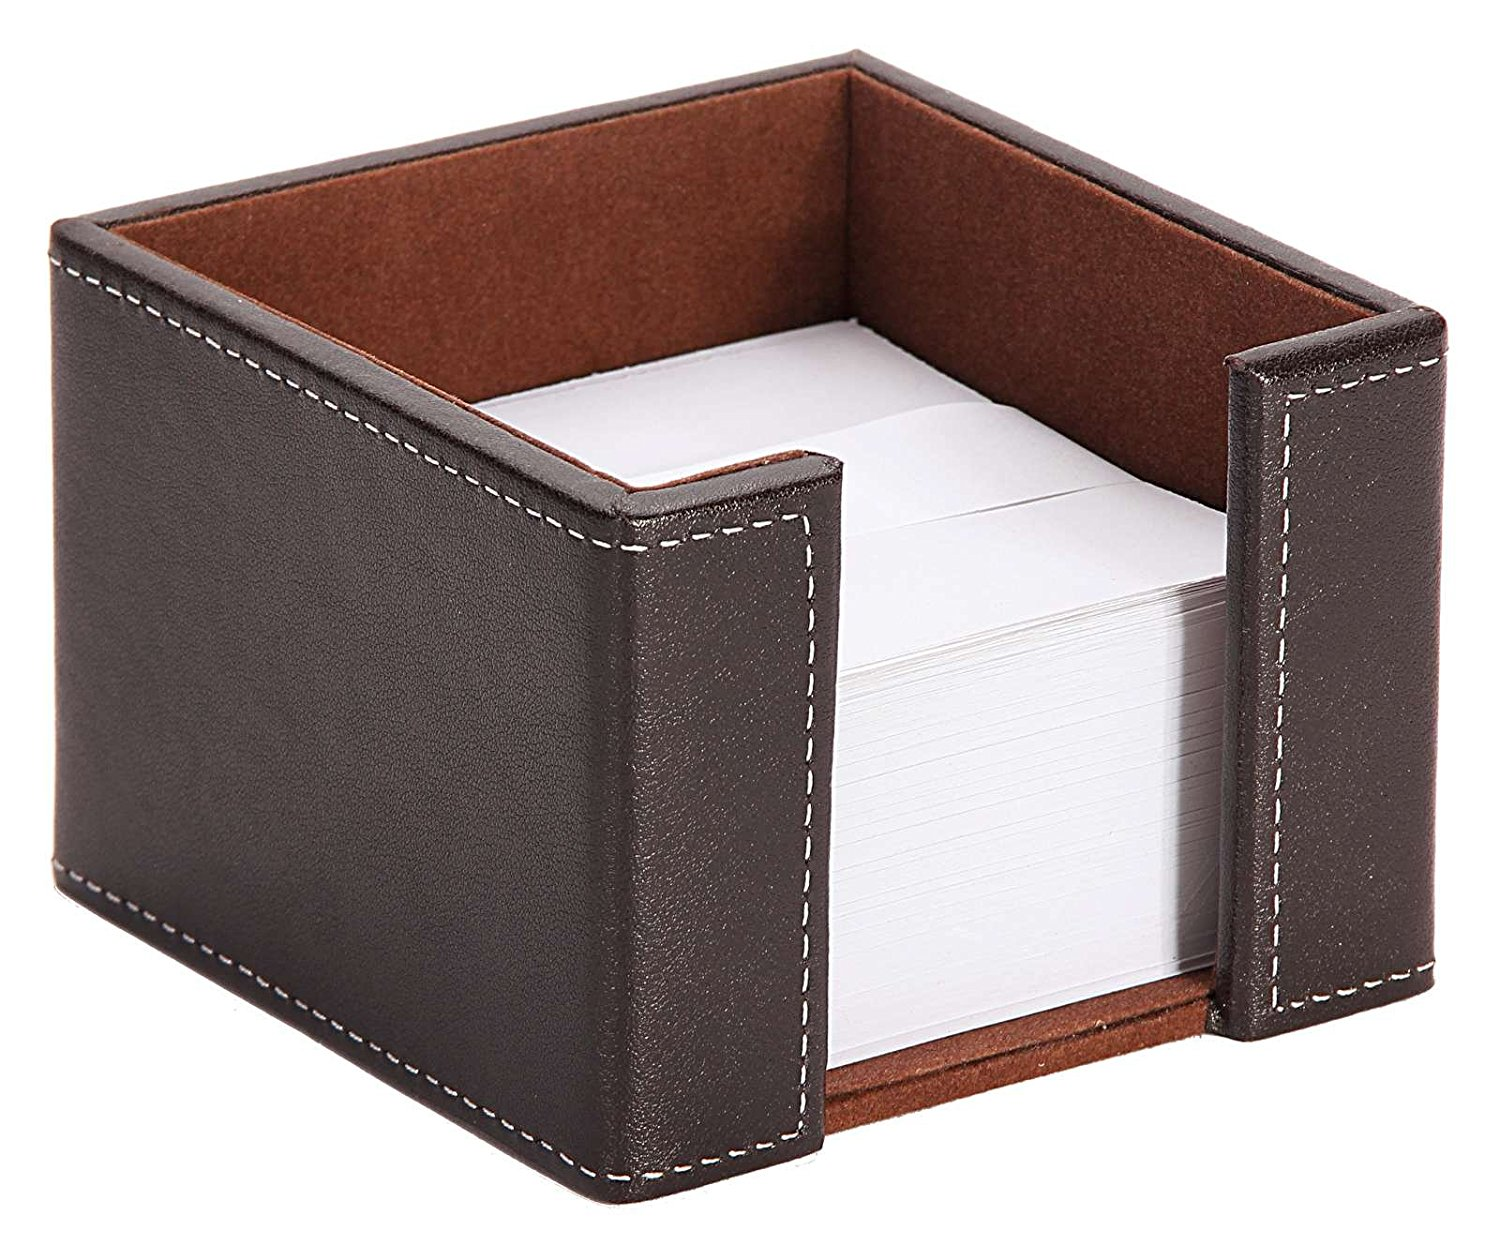 Osco Faux Leather Memo Pad Holder Brown